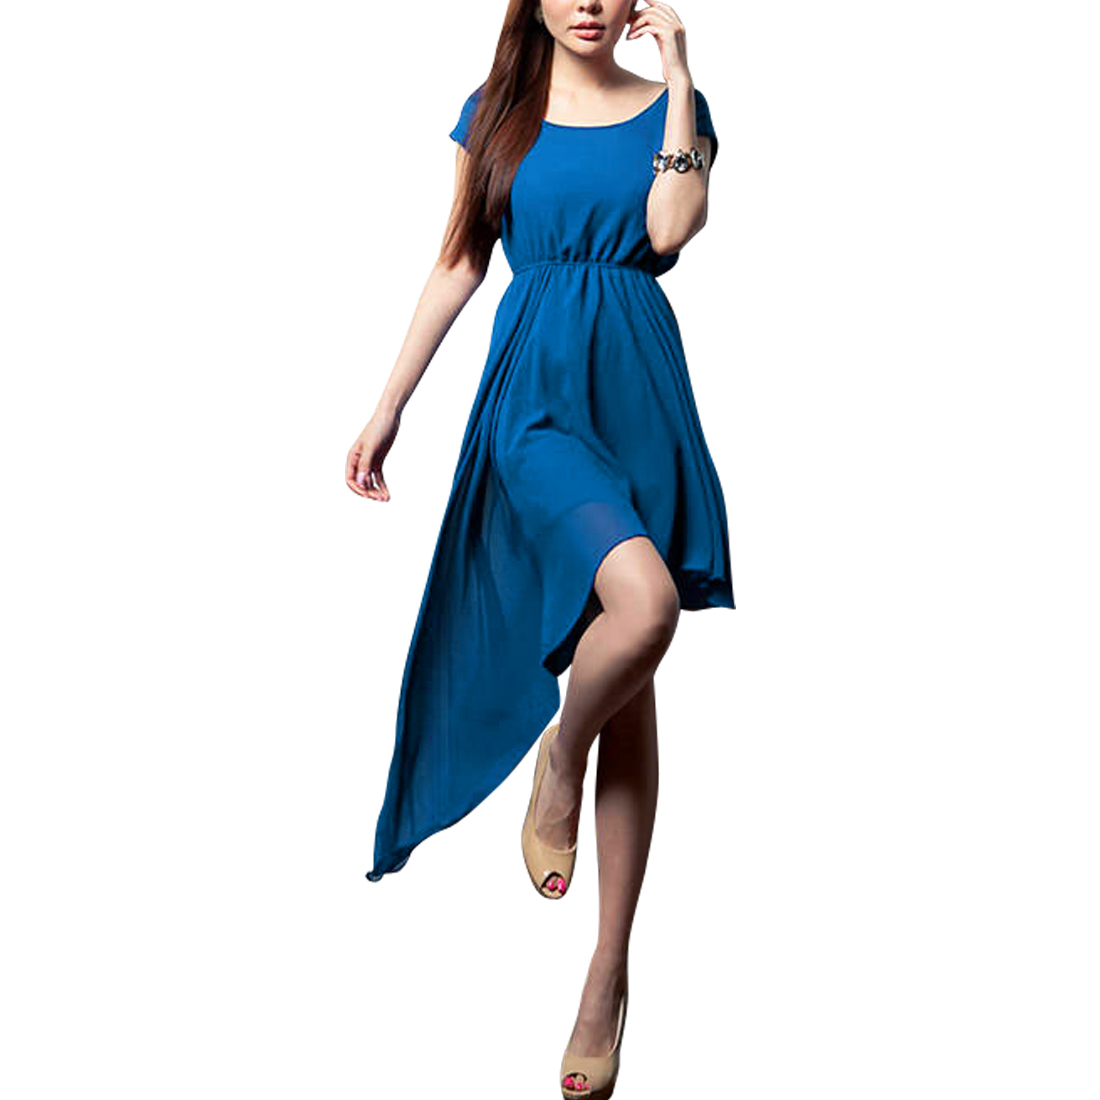 Lady Boat Neck Semi-sheer Stretchy Waist Blue Pleated Dress XS